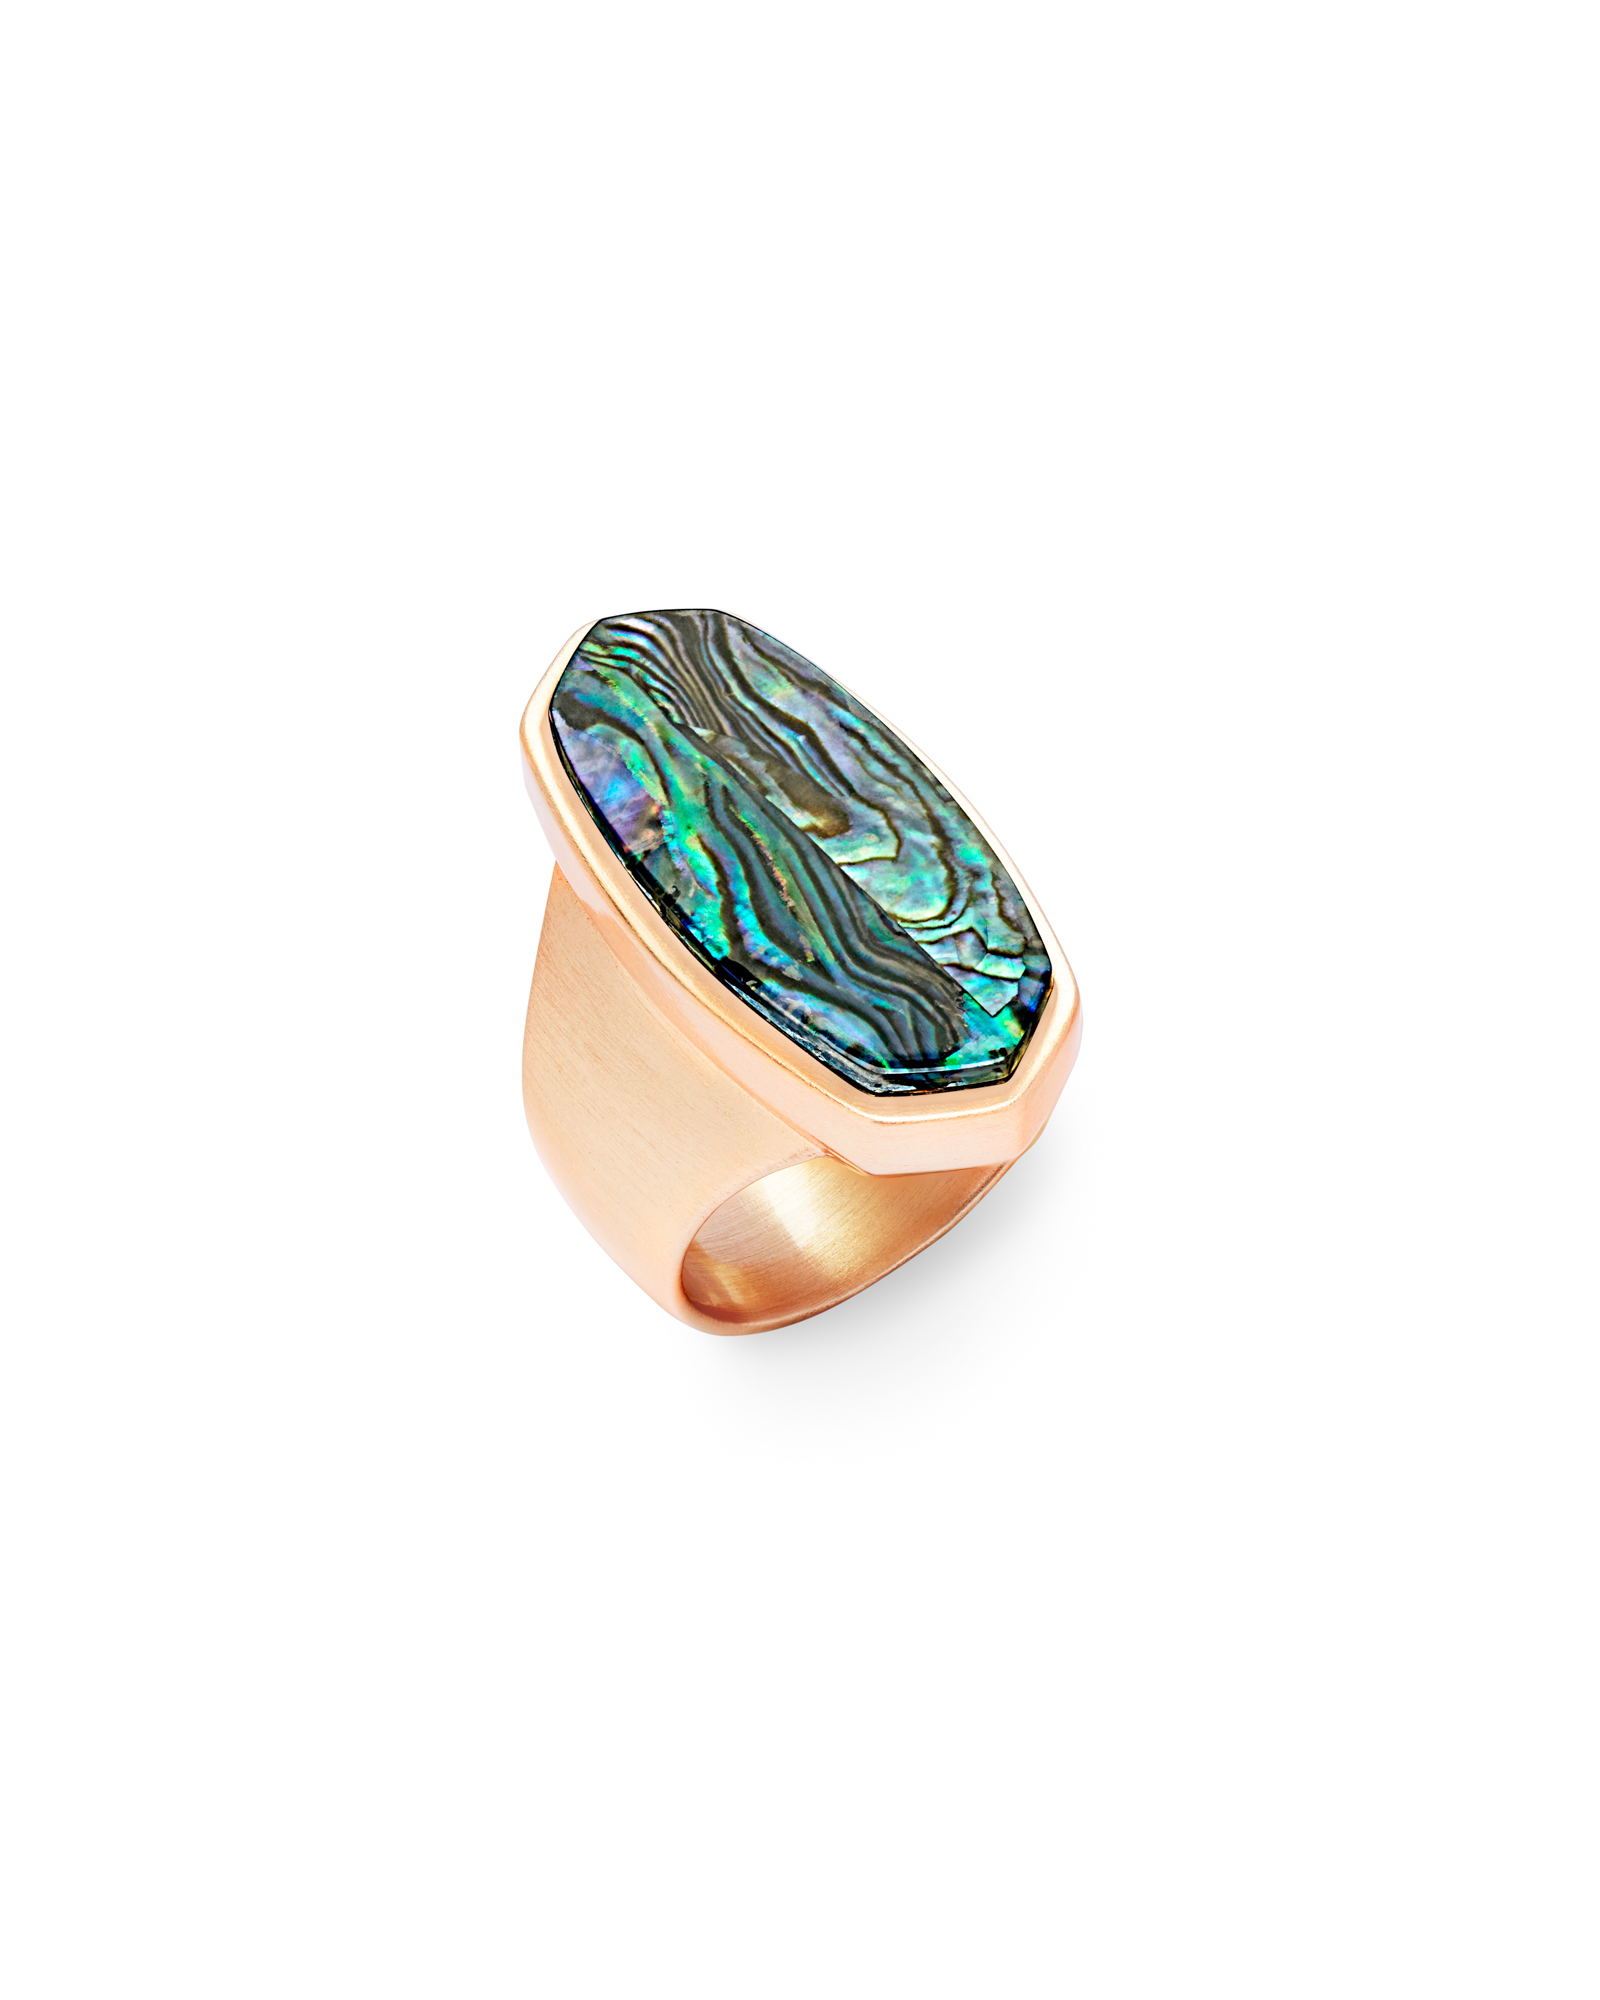 Kit Rose Gold Cocktail Ring in Abalone Shell - 8